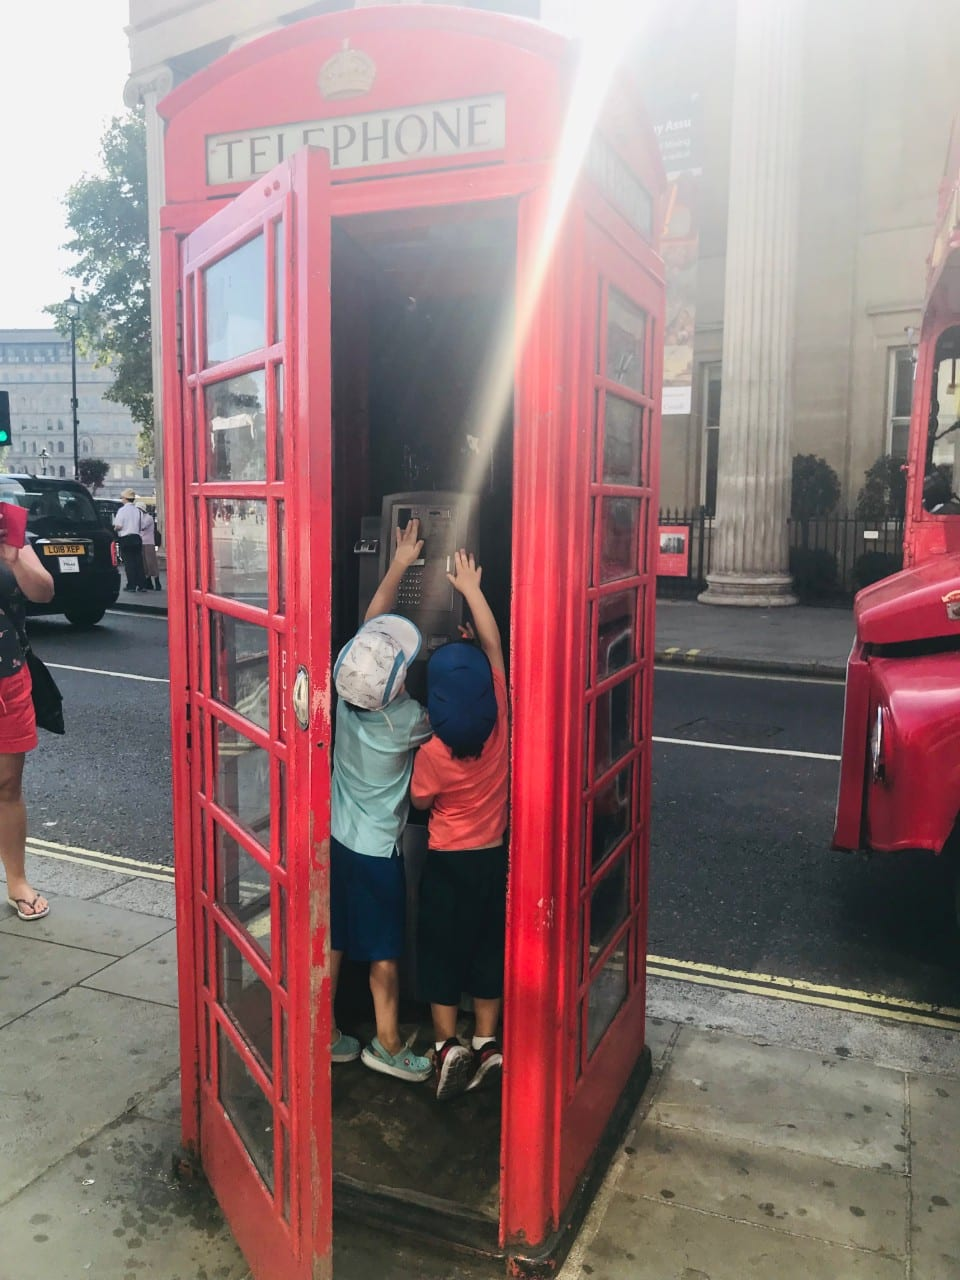 Two boys playing with a phone in a red telephone booth in London, England